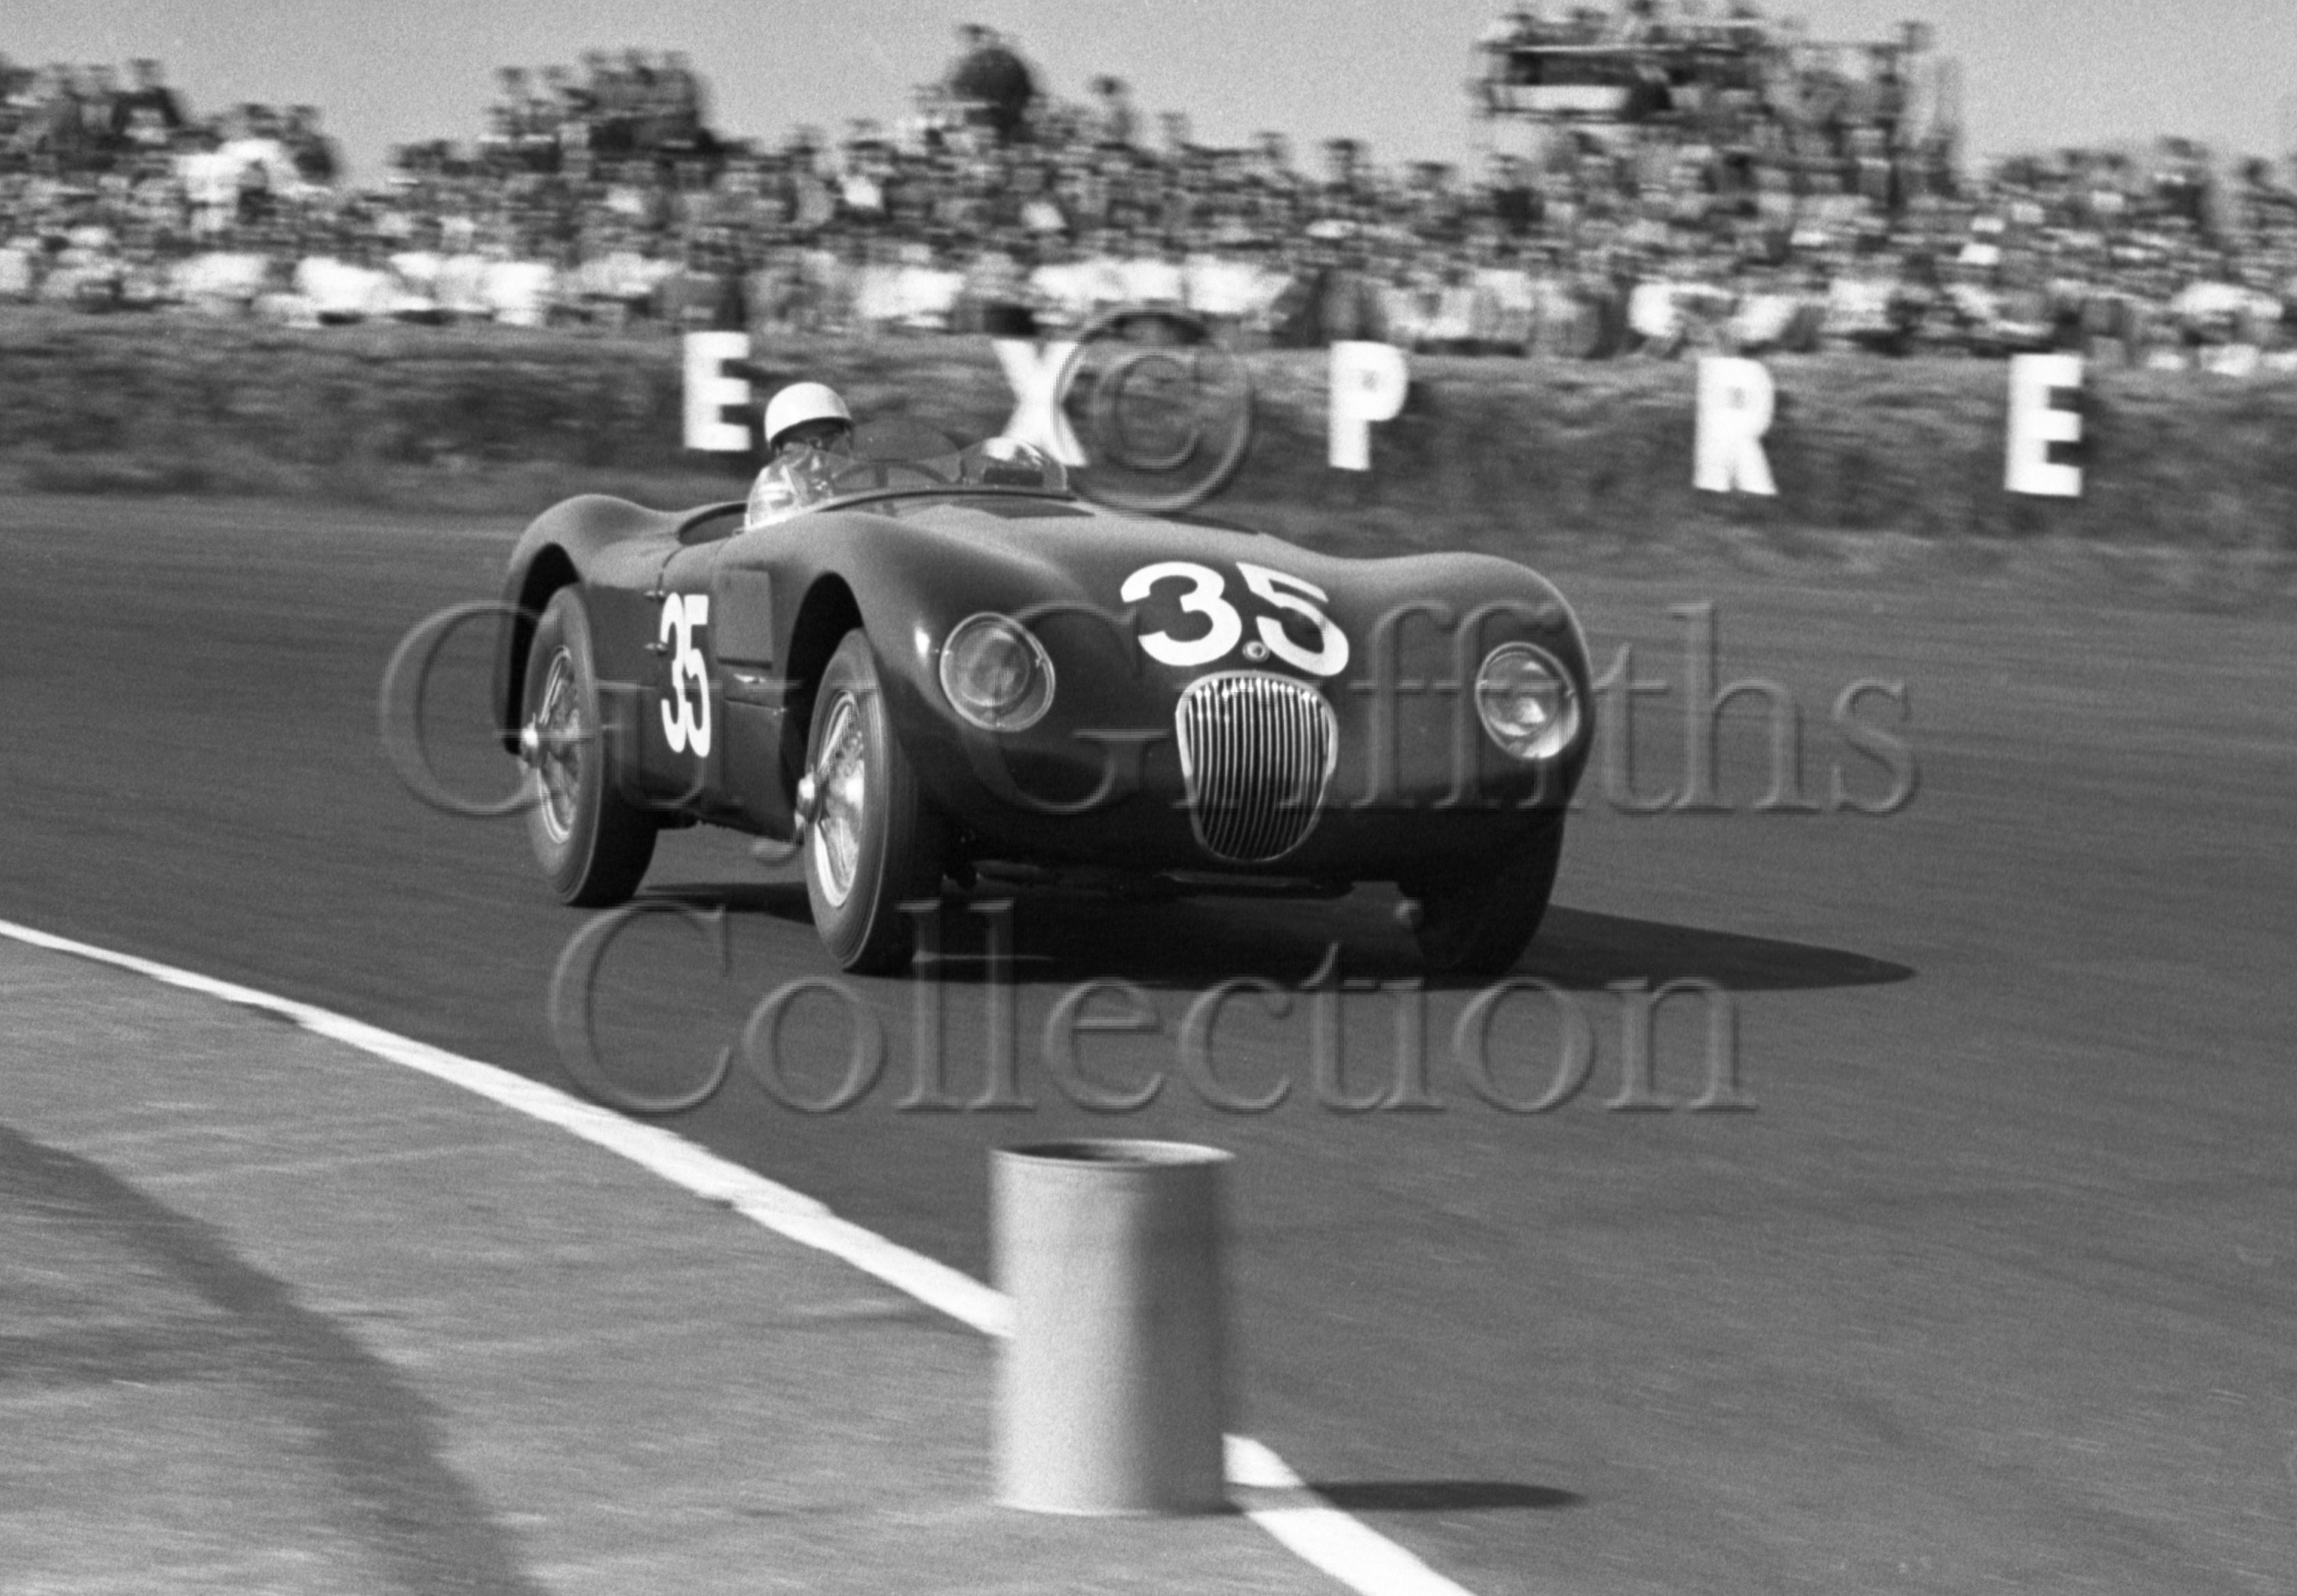 68-831–S-Moss–Jaguar–Silverstone–09-05-1953.jpg - The Guy Griffiths Collection